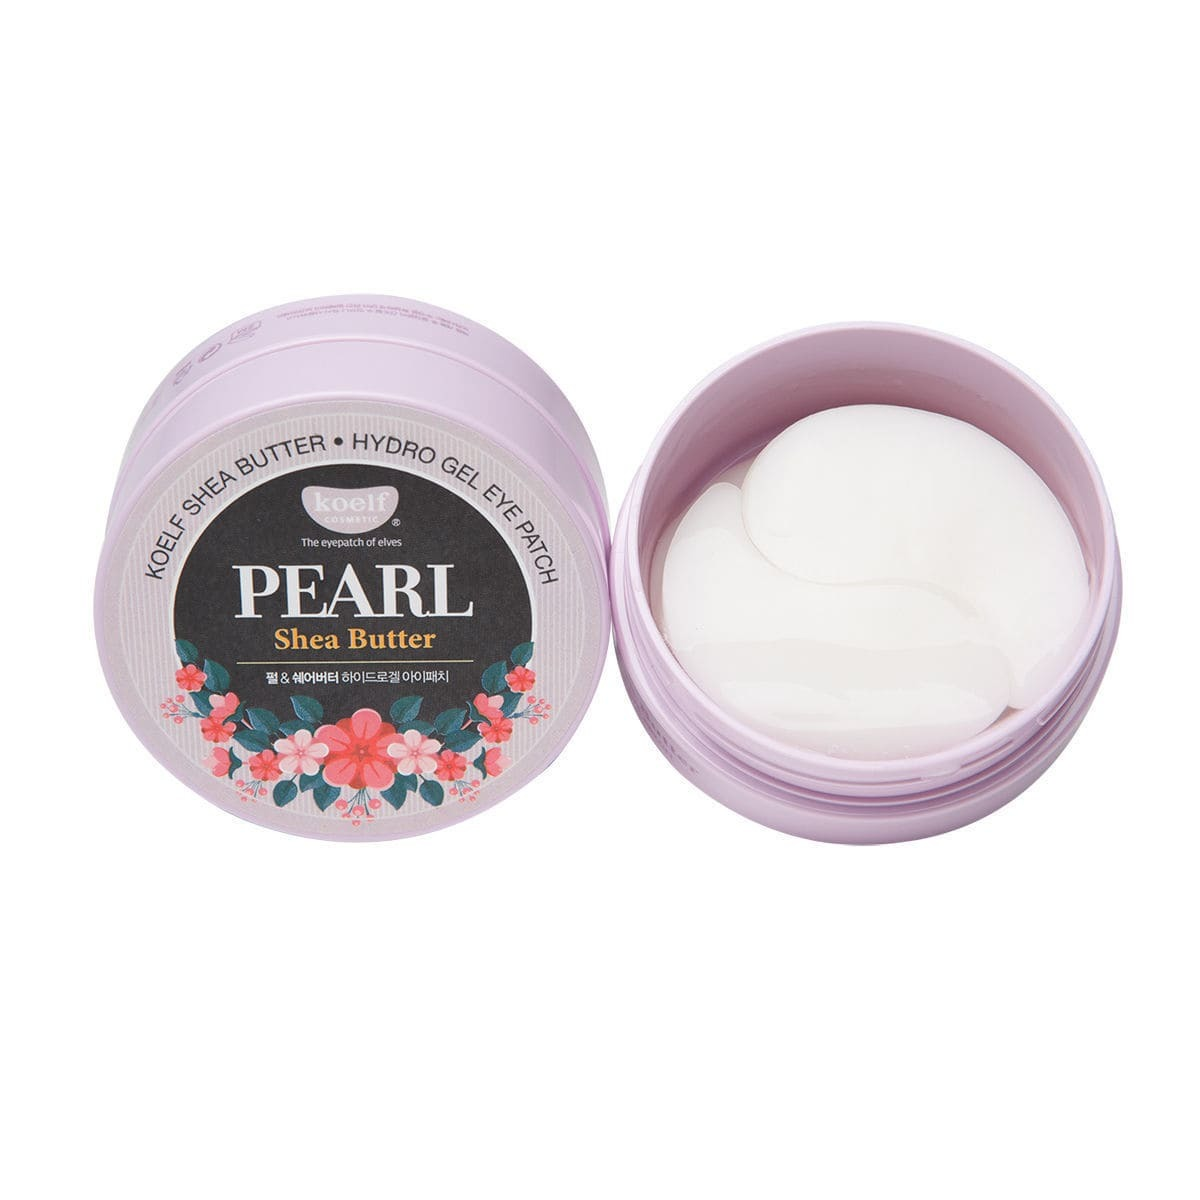 Гидрогелевые патчи Petitfee Koelf Pearl & Shea Butter Eye Patch